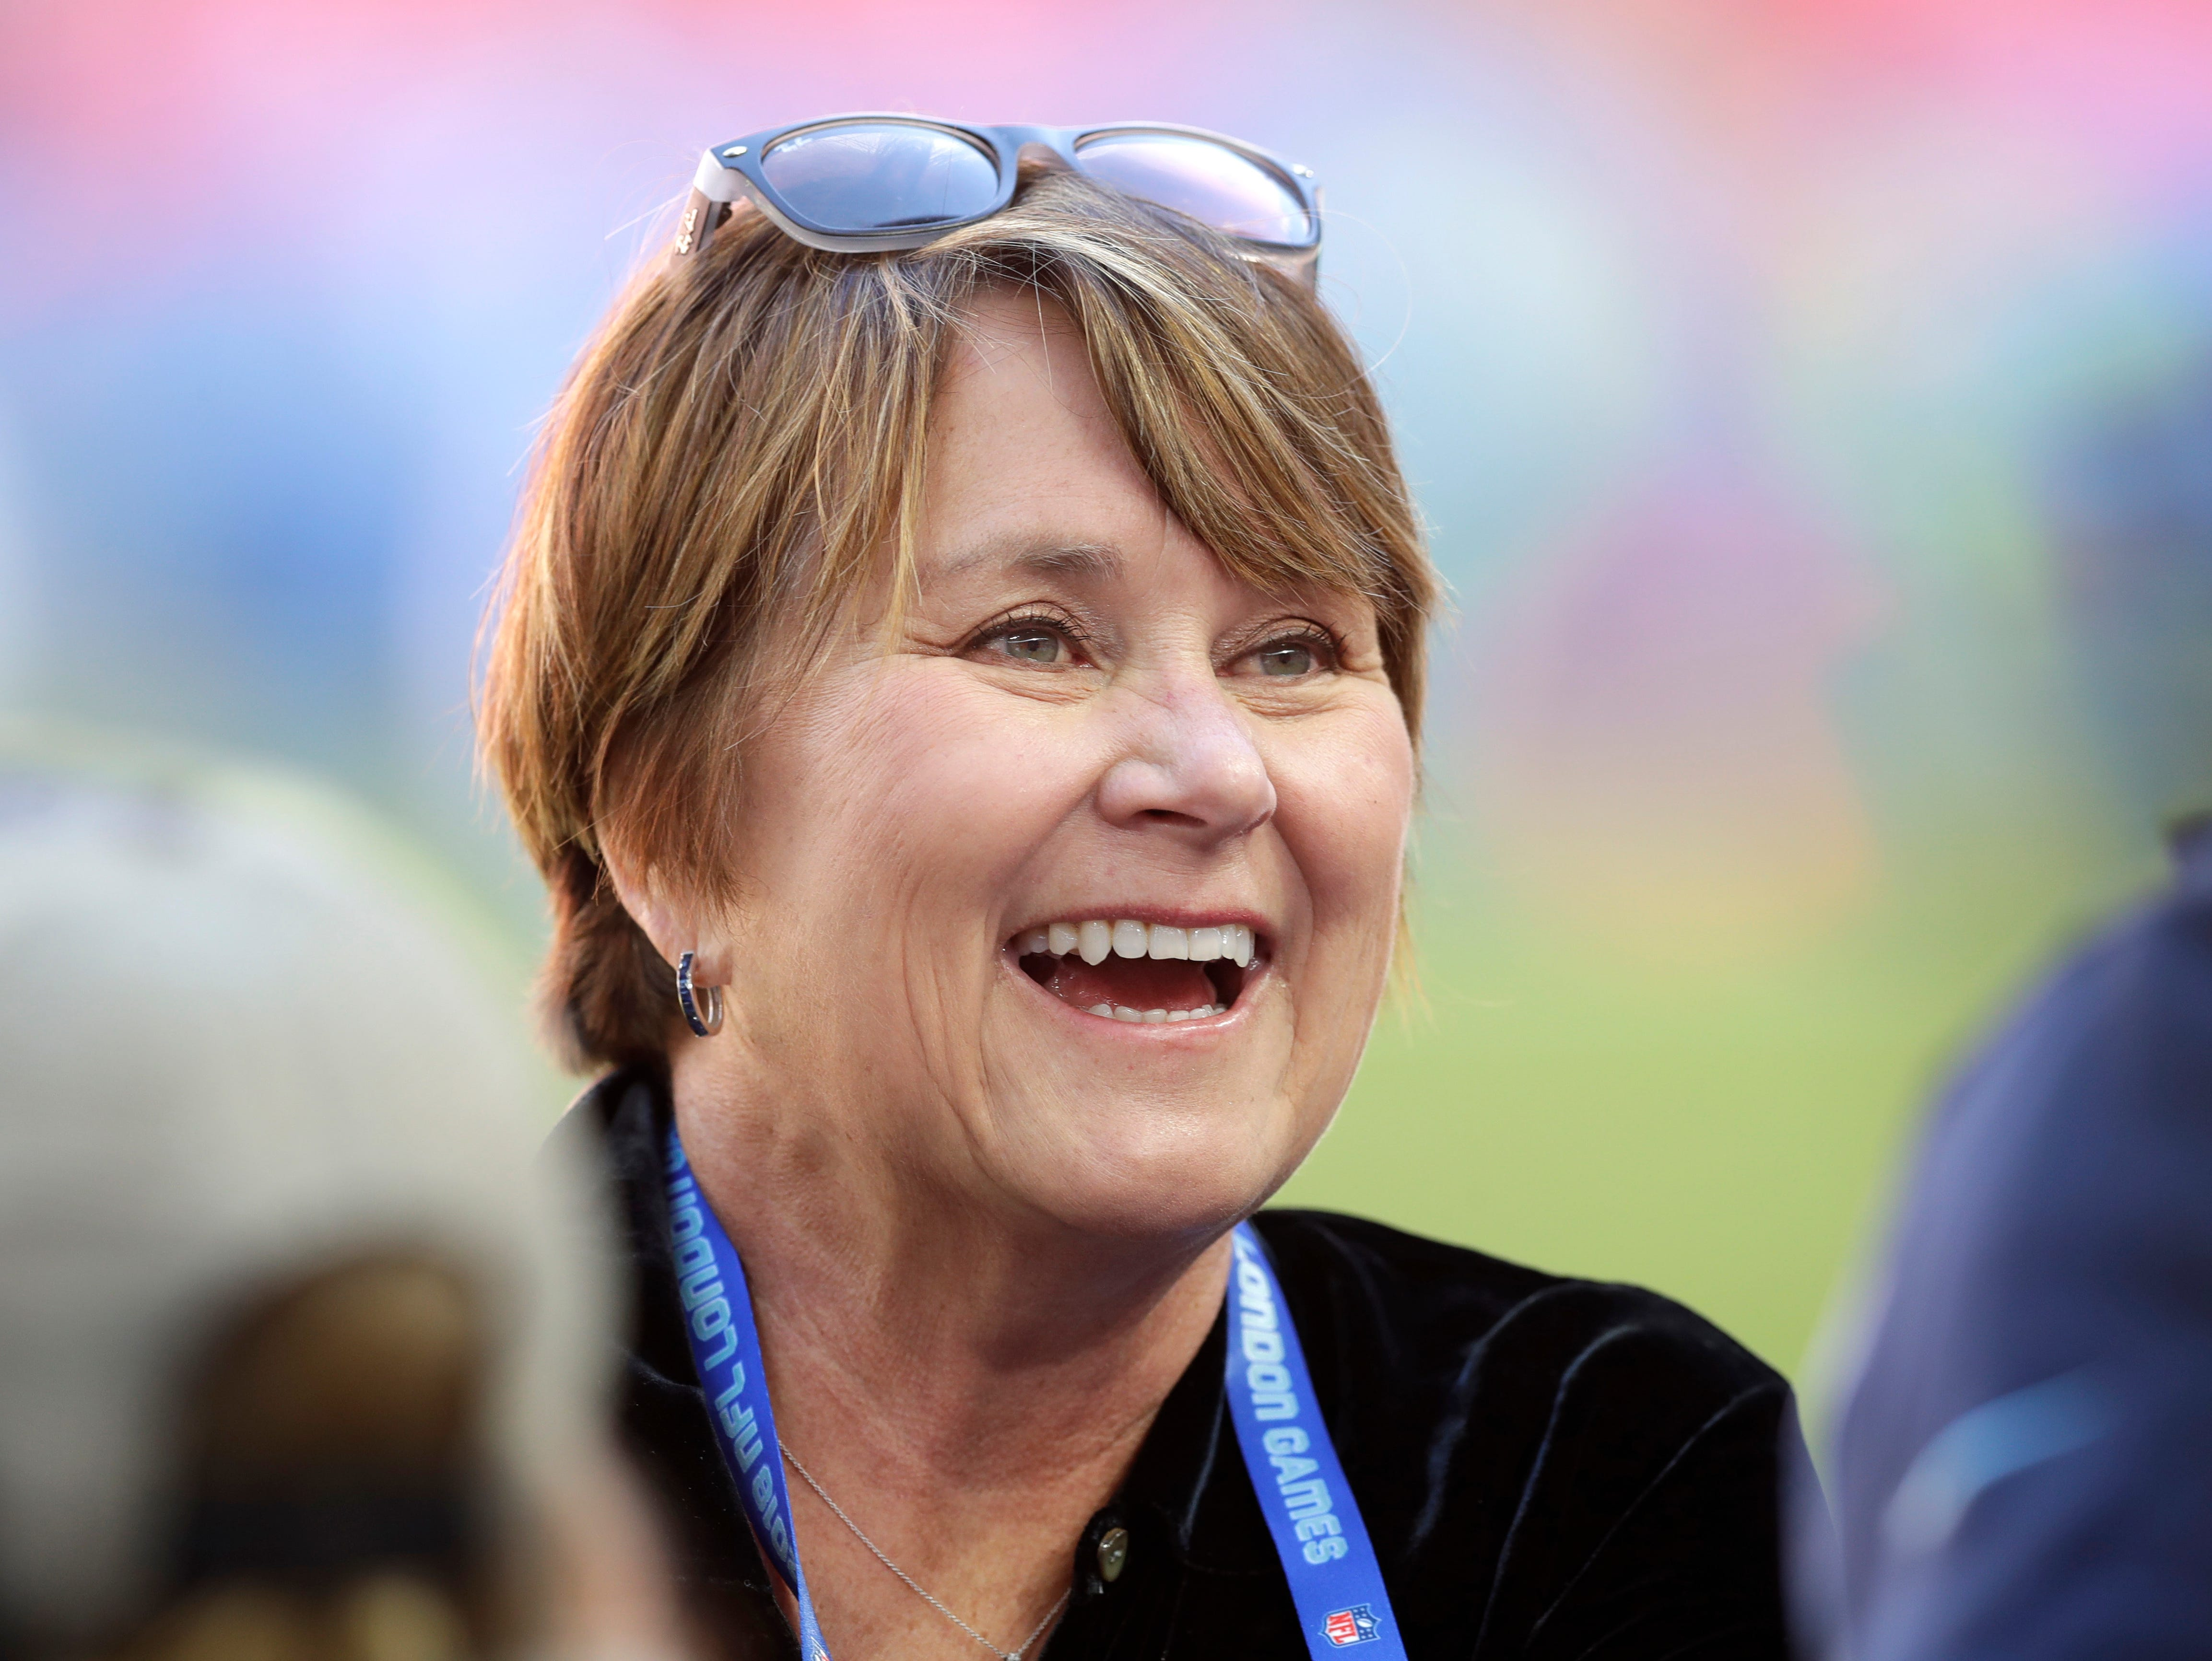 Amy Adams Strunk, the controlling owner of the Tennessee Titans smiles before an NFL football game against Los Angeles Chargers at Wembley stadium in London, Sunday, Oct. 21, 2018.